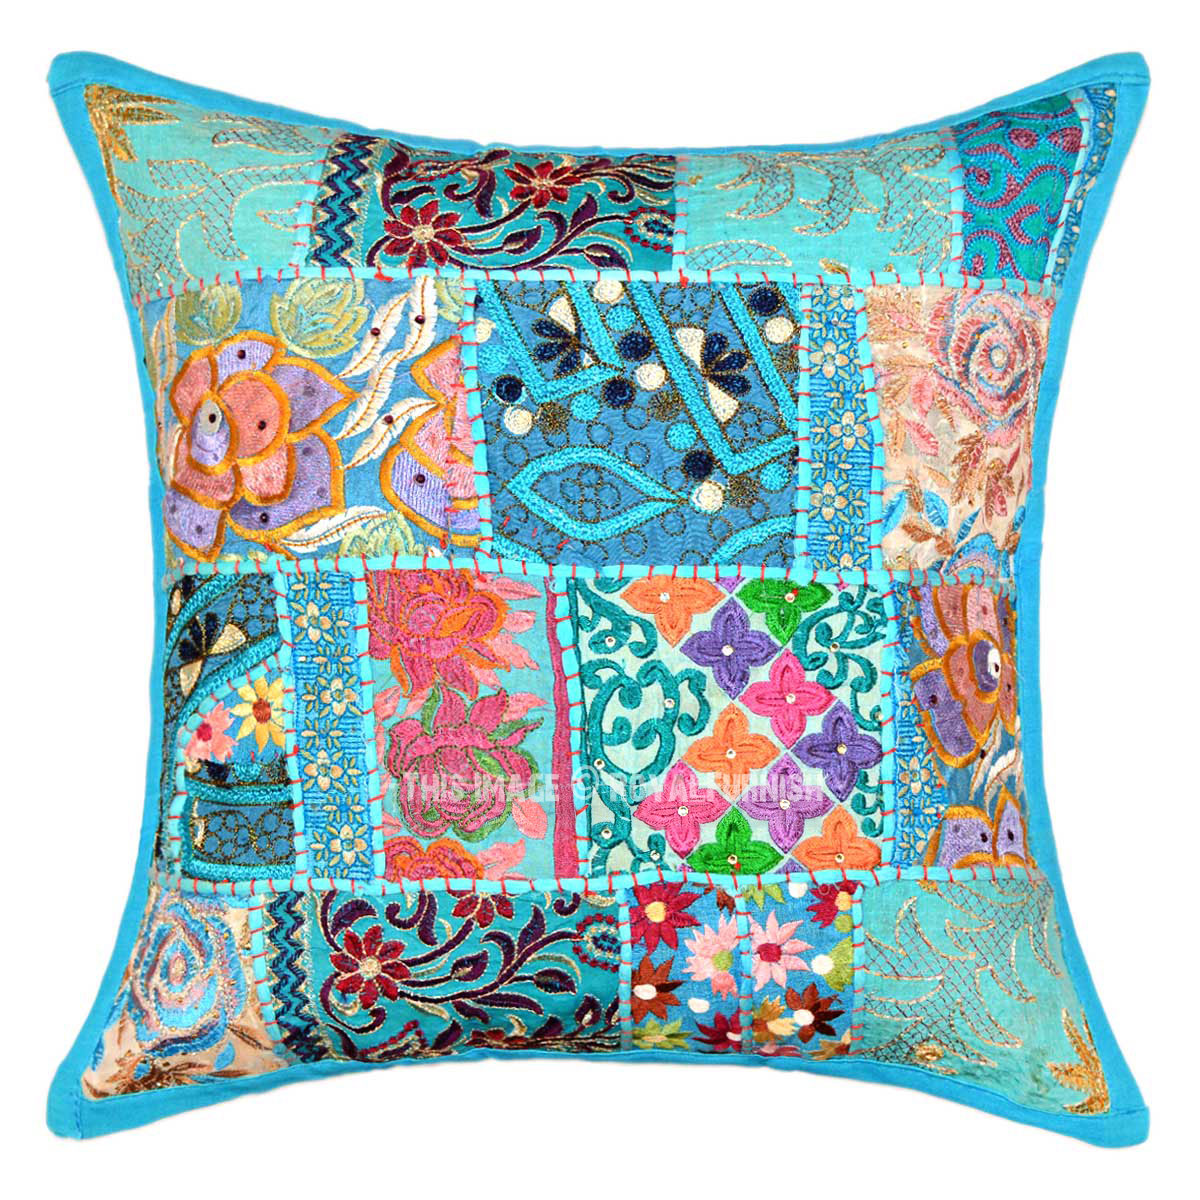 18X18 Turquoise Blue One-Of-A-Kind Boho Accent Throw Pillow Cover - RoyalFurnish.com